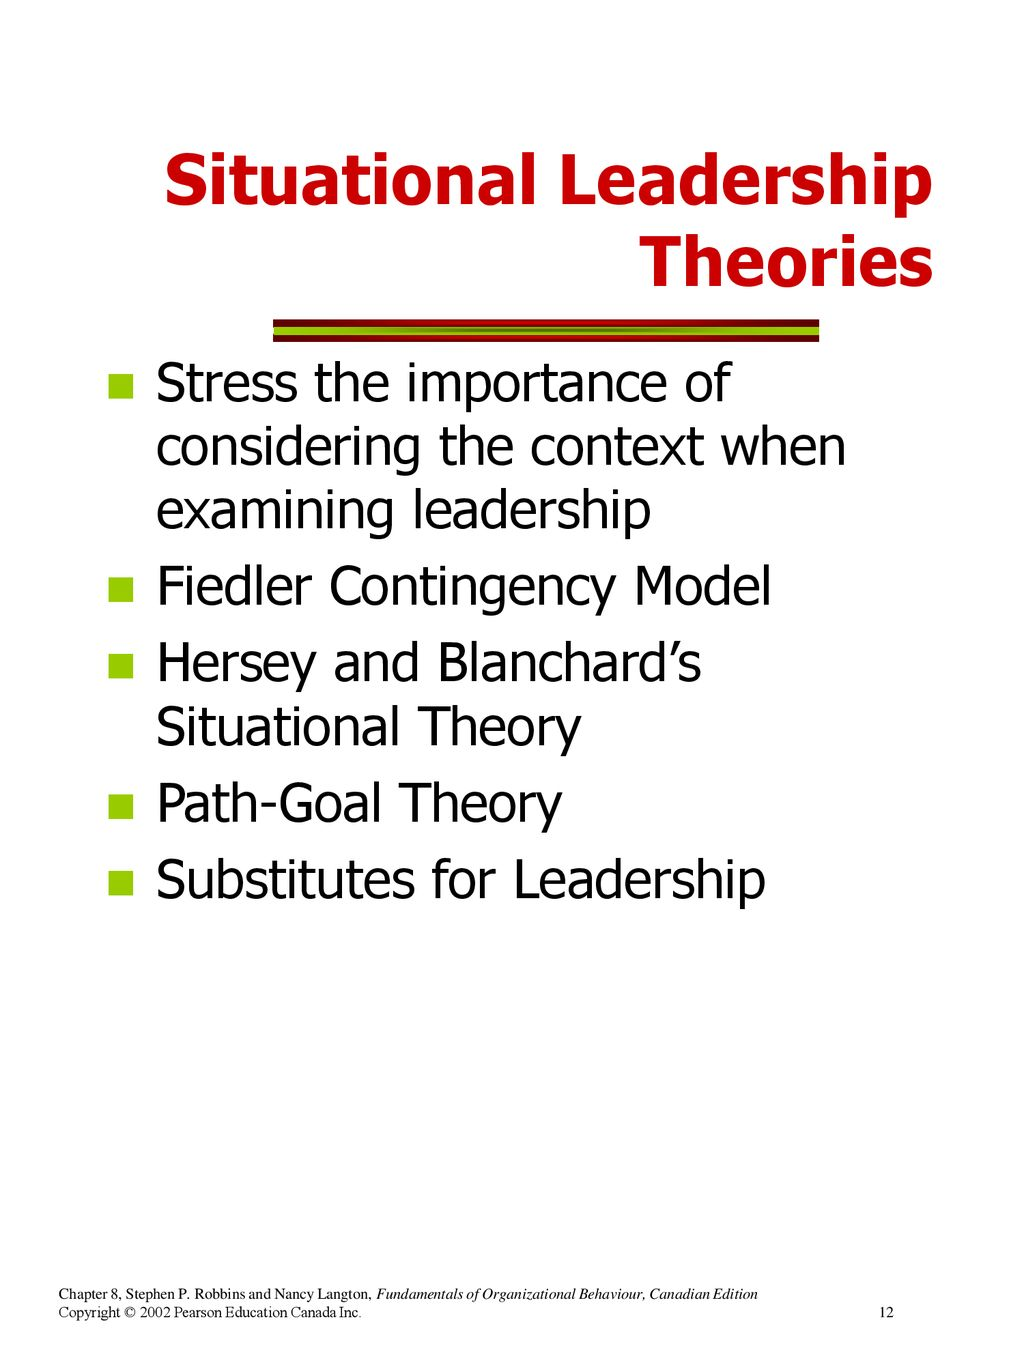 why is situational leadership important